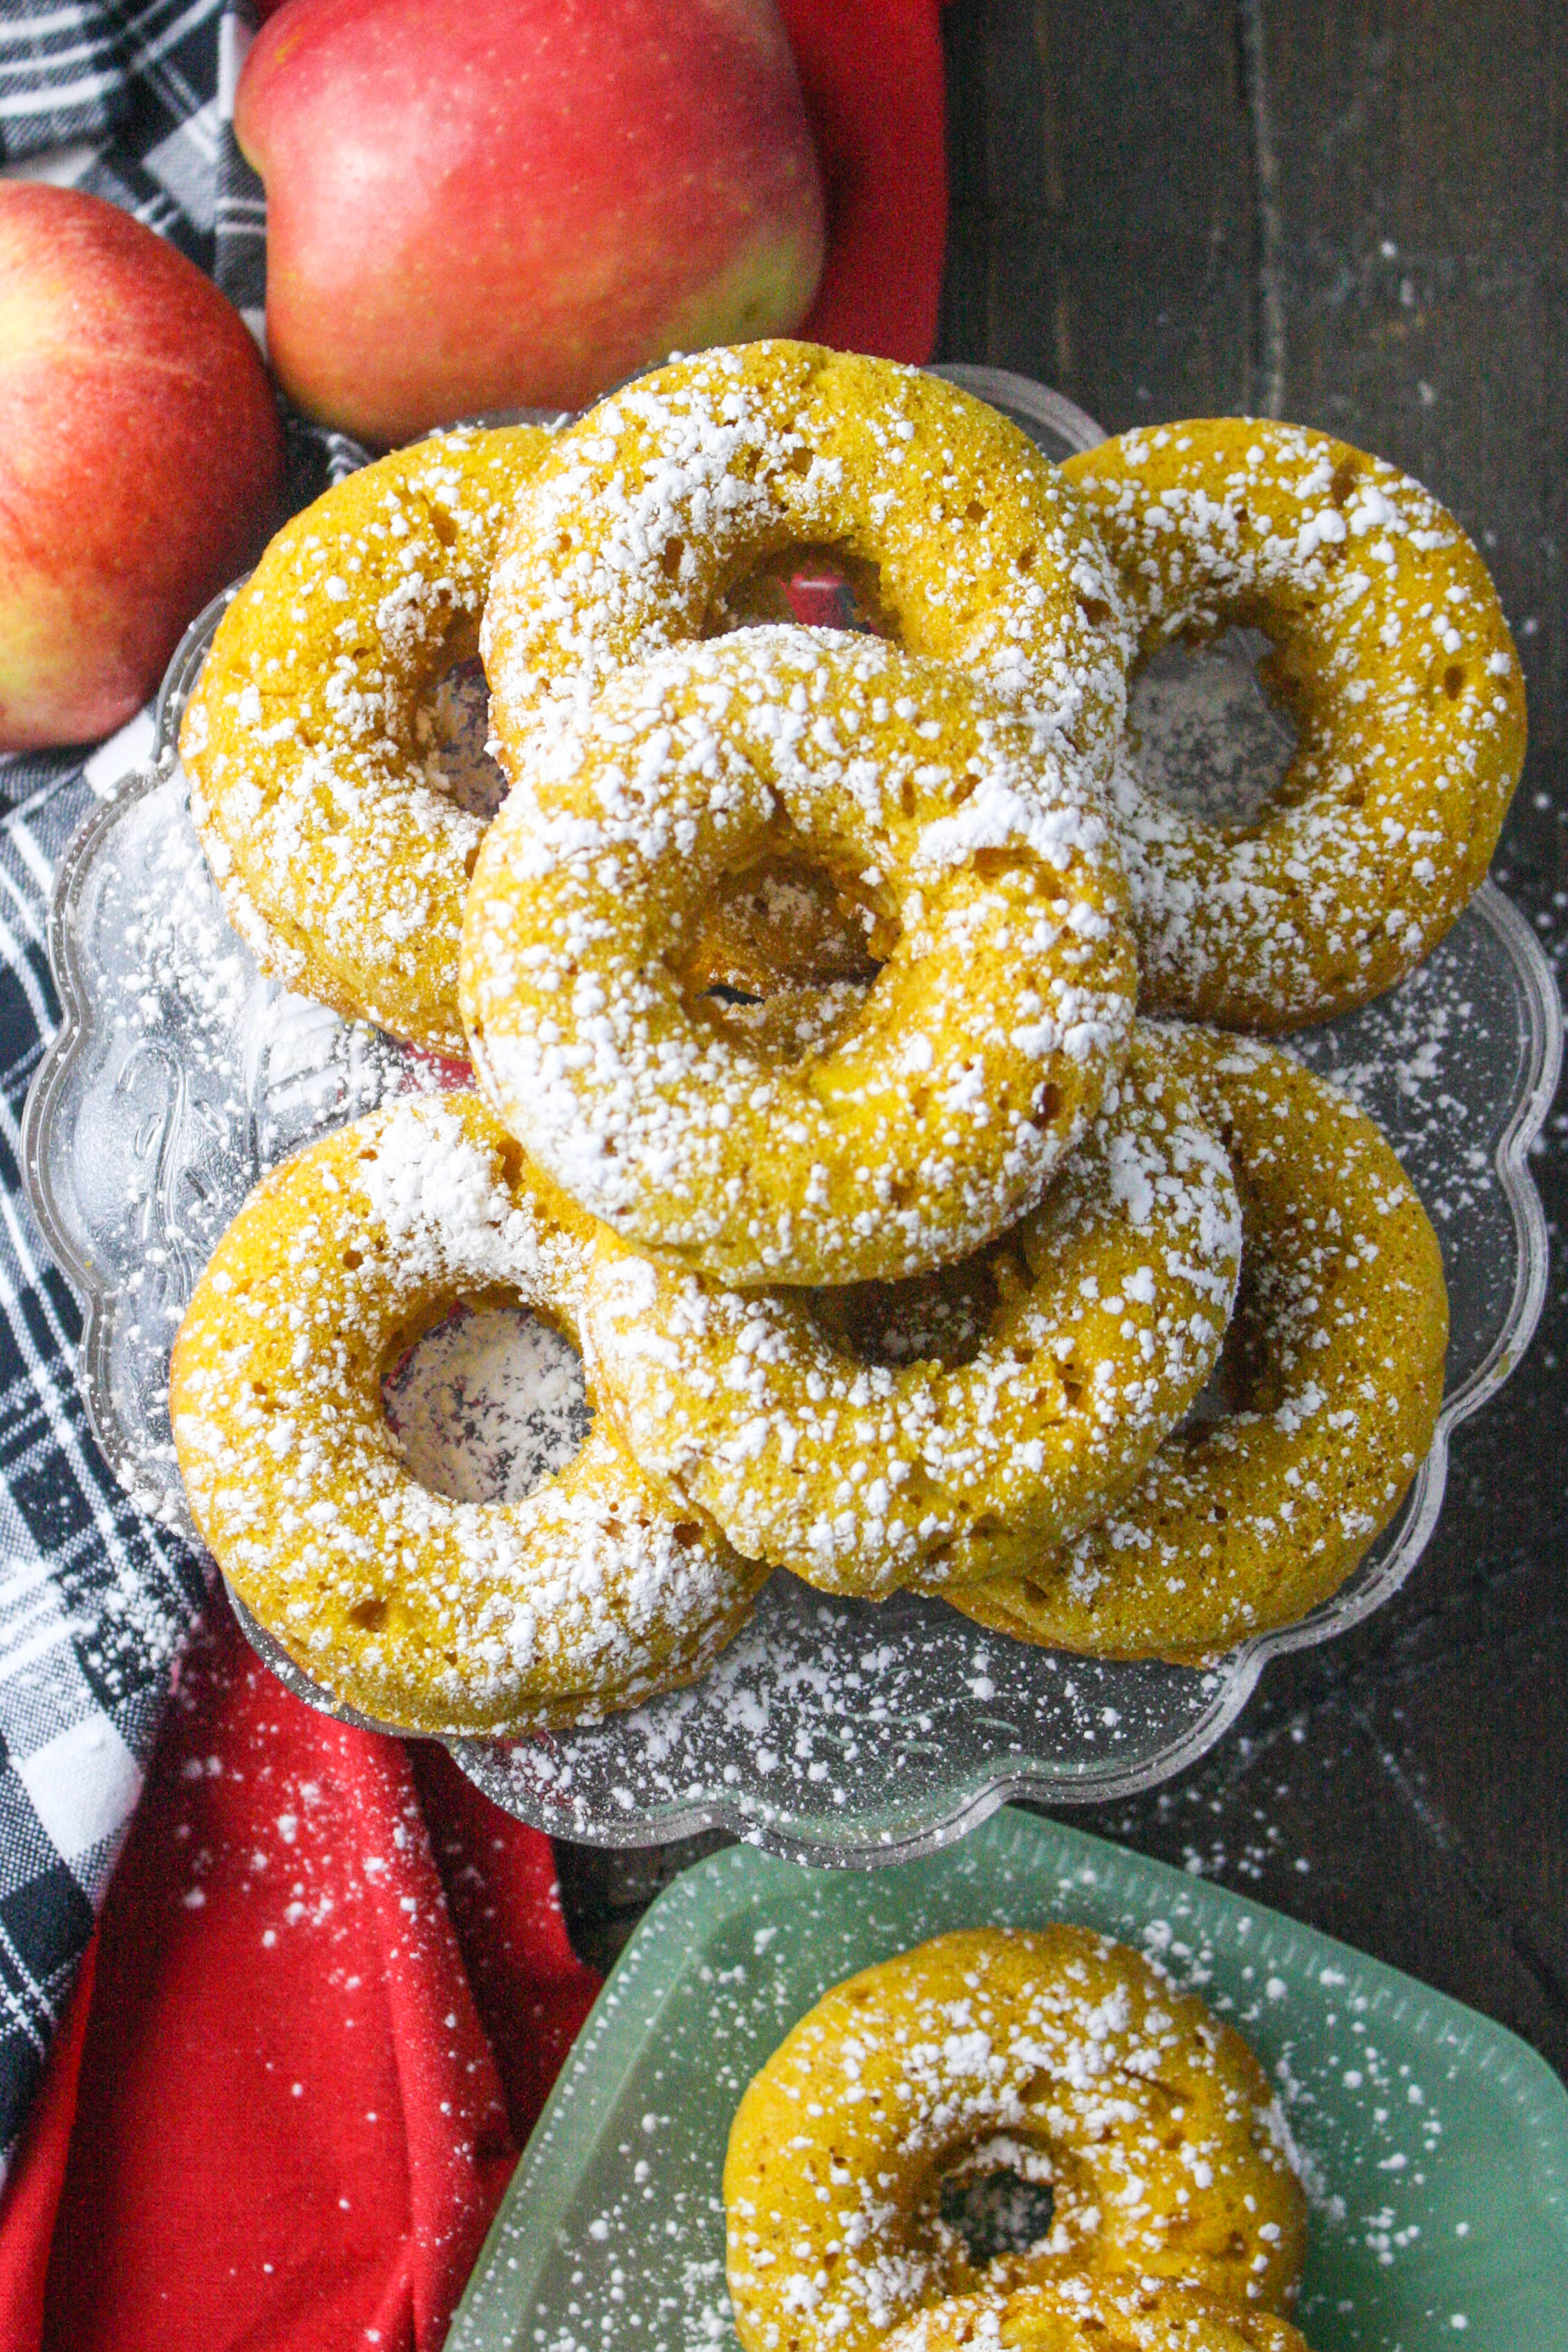 Baked Spiced Apple & Pumpkin Donuts are a wonderful treat for the season! You'll love these Baked Spiced Apple & Pumpkin Donuts!